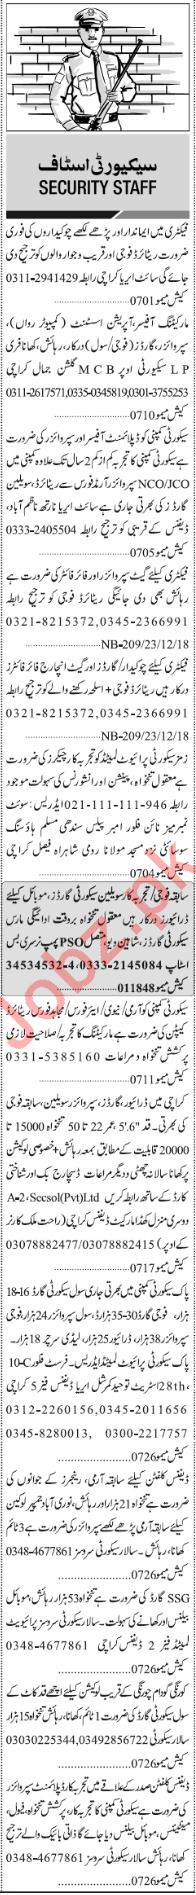 Jang Sunday Classified Ads 23rd Dec 2018 Security Staff